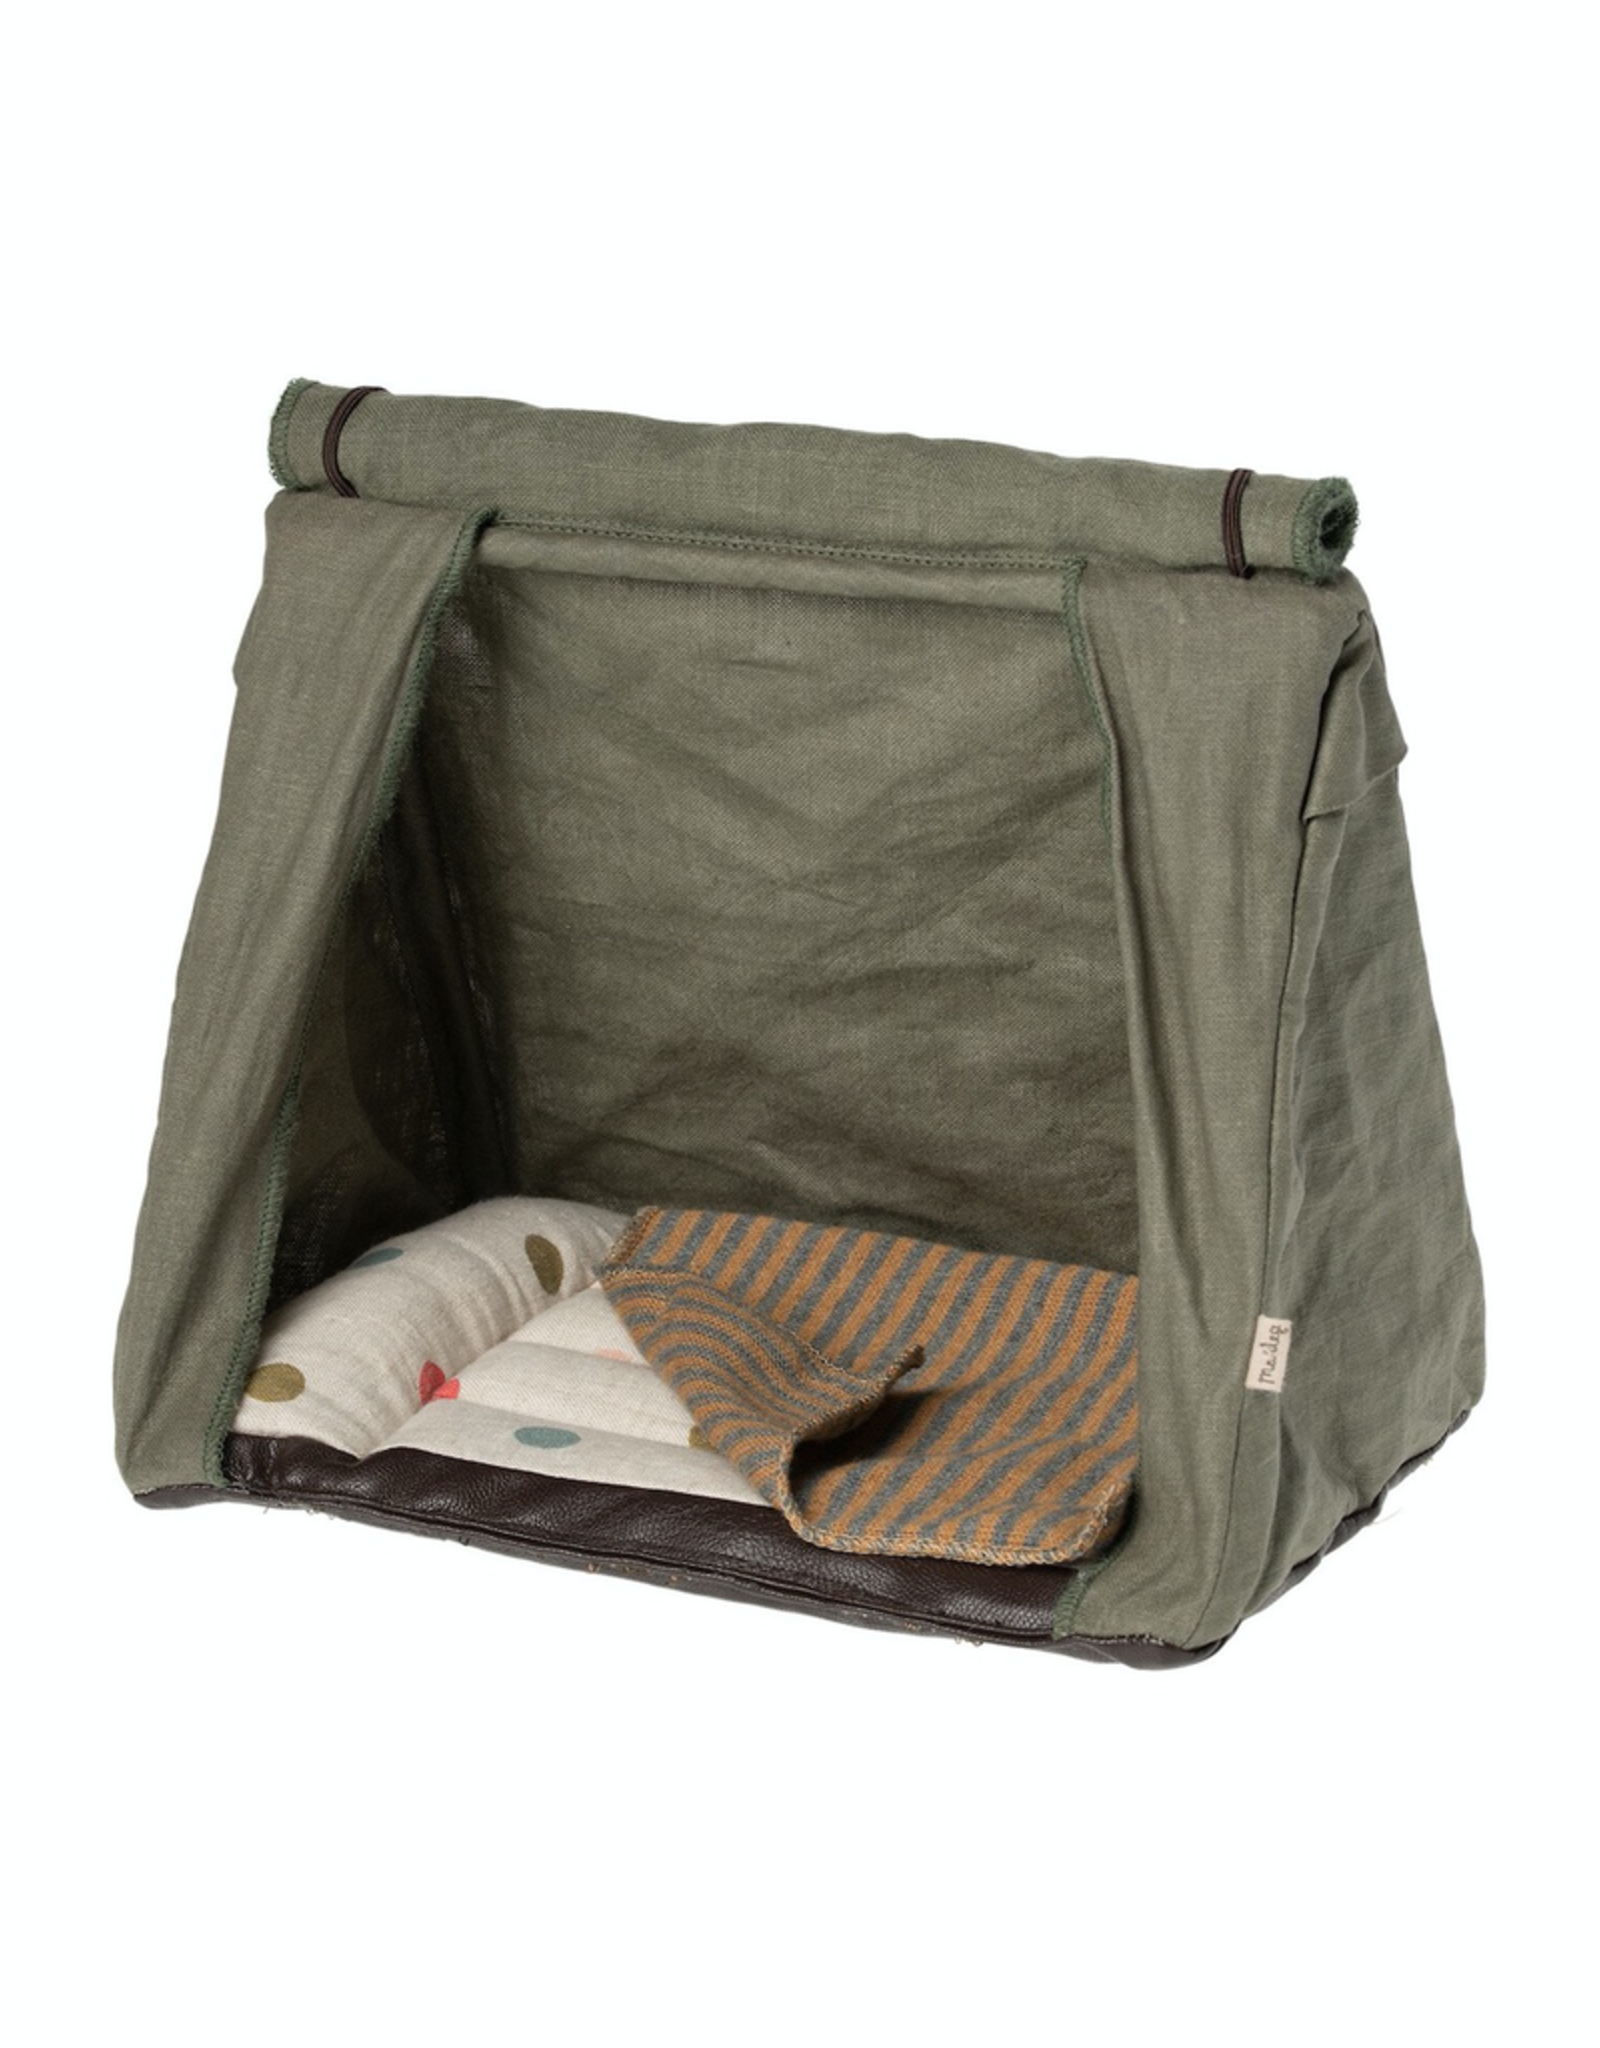 Maileg Happy Camper Tent for Mice